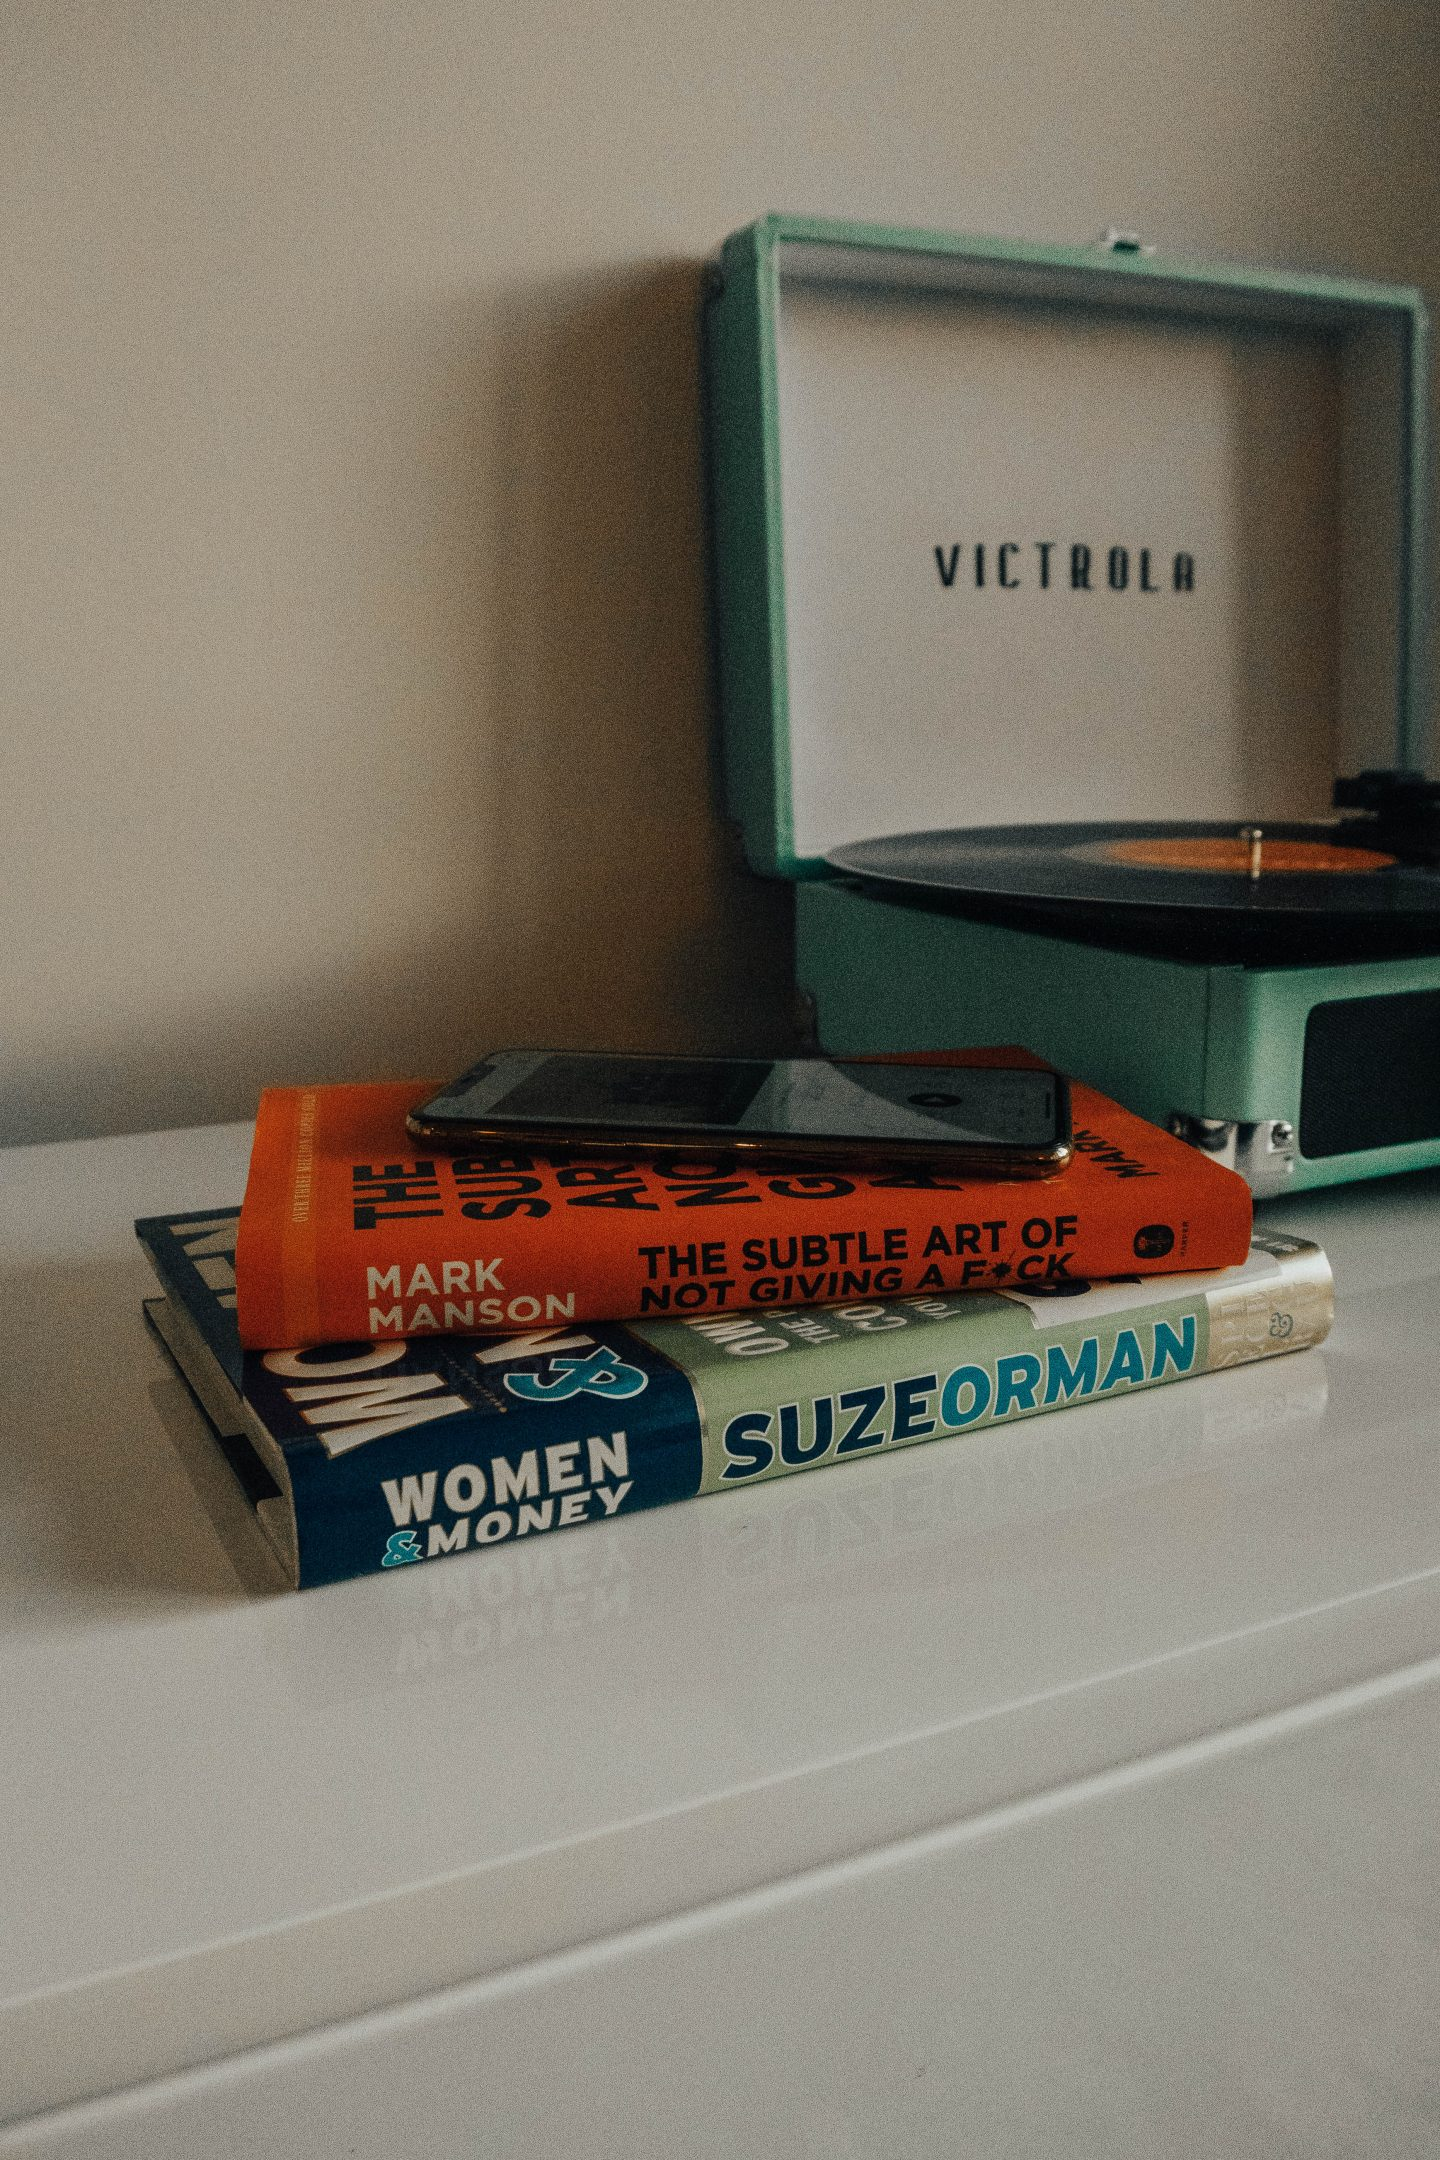 Books To Read To Win At Life